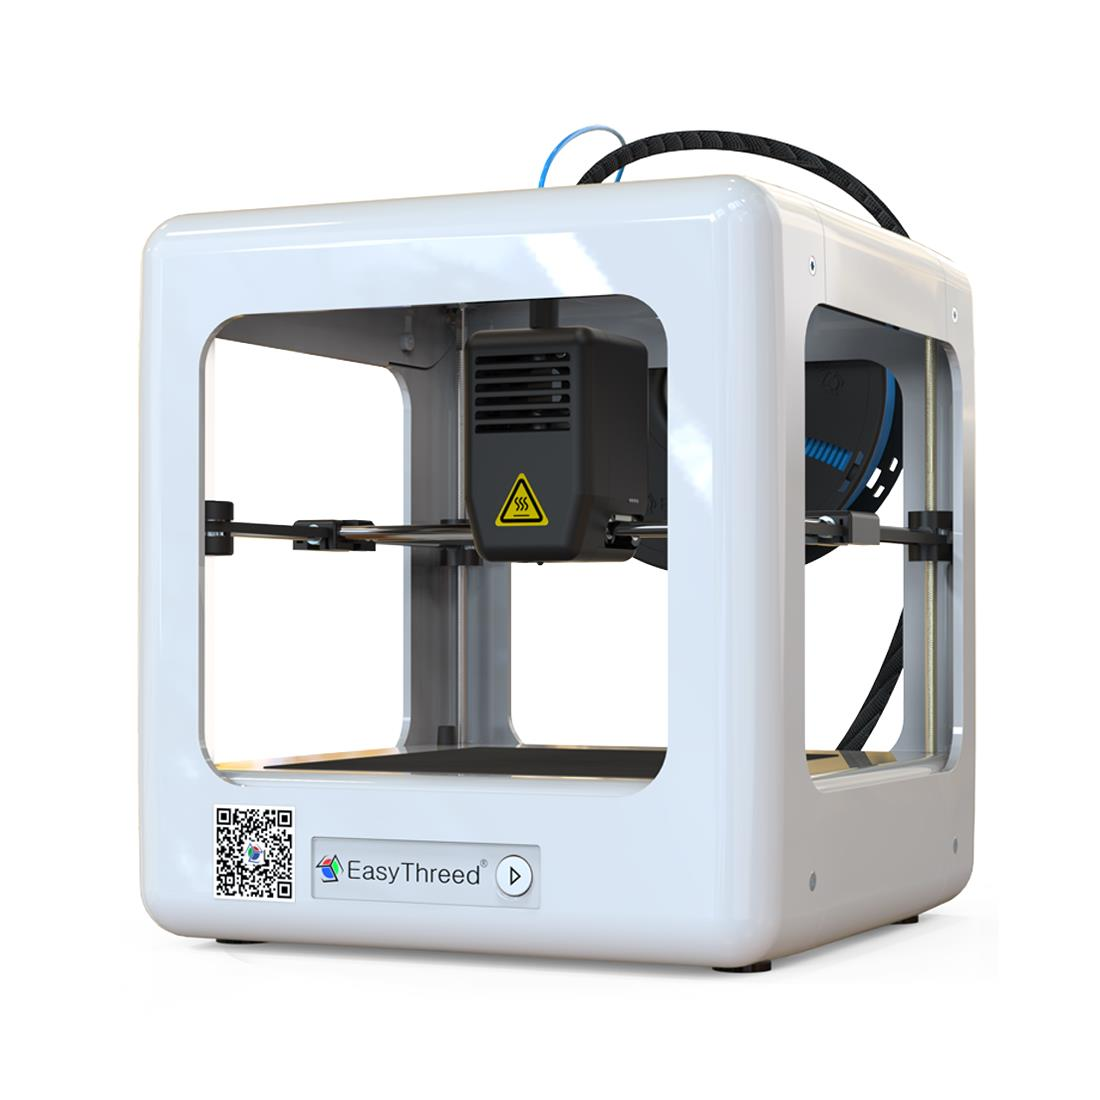 Easythreed® NANO Mini Fully Assembled 3D Printer for Household Education & Students 90*110*110mm Printing Size Support One Key Printing with 1.75mm 0.4mm Nozzle/CE Certificate